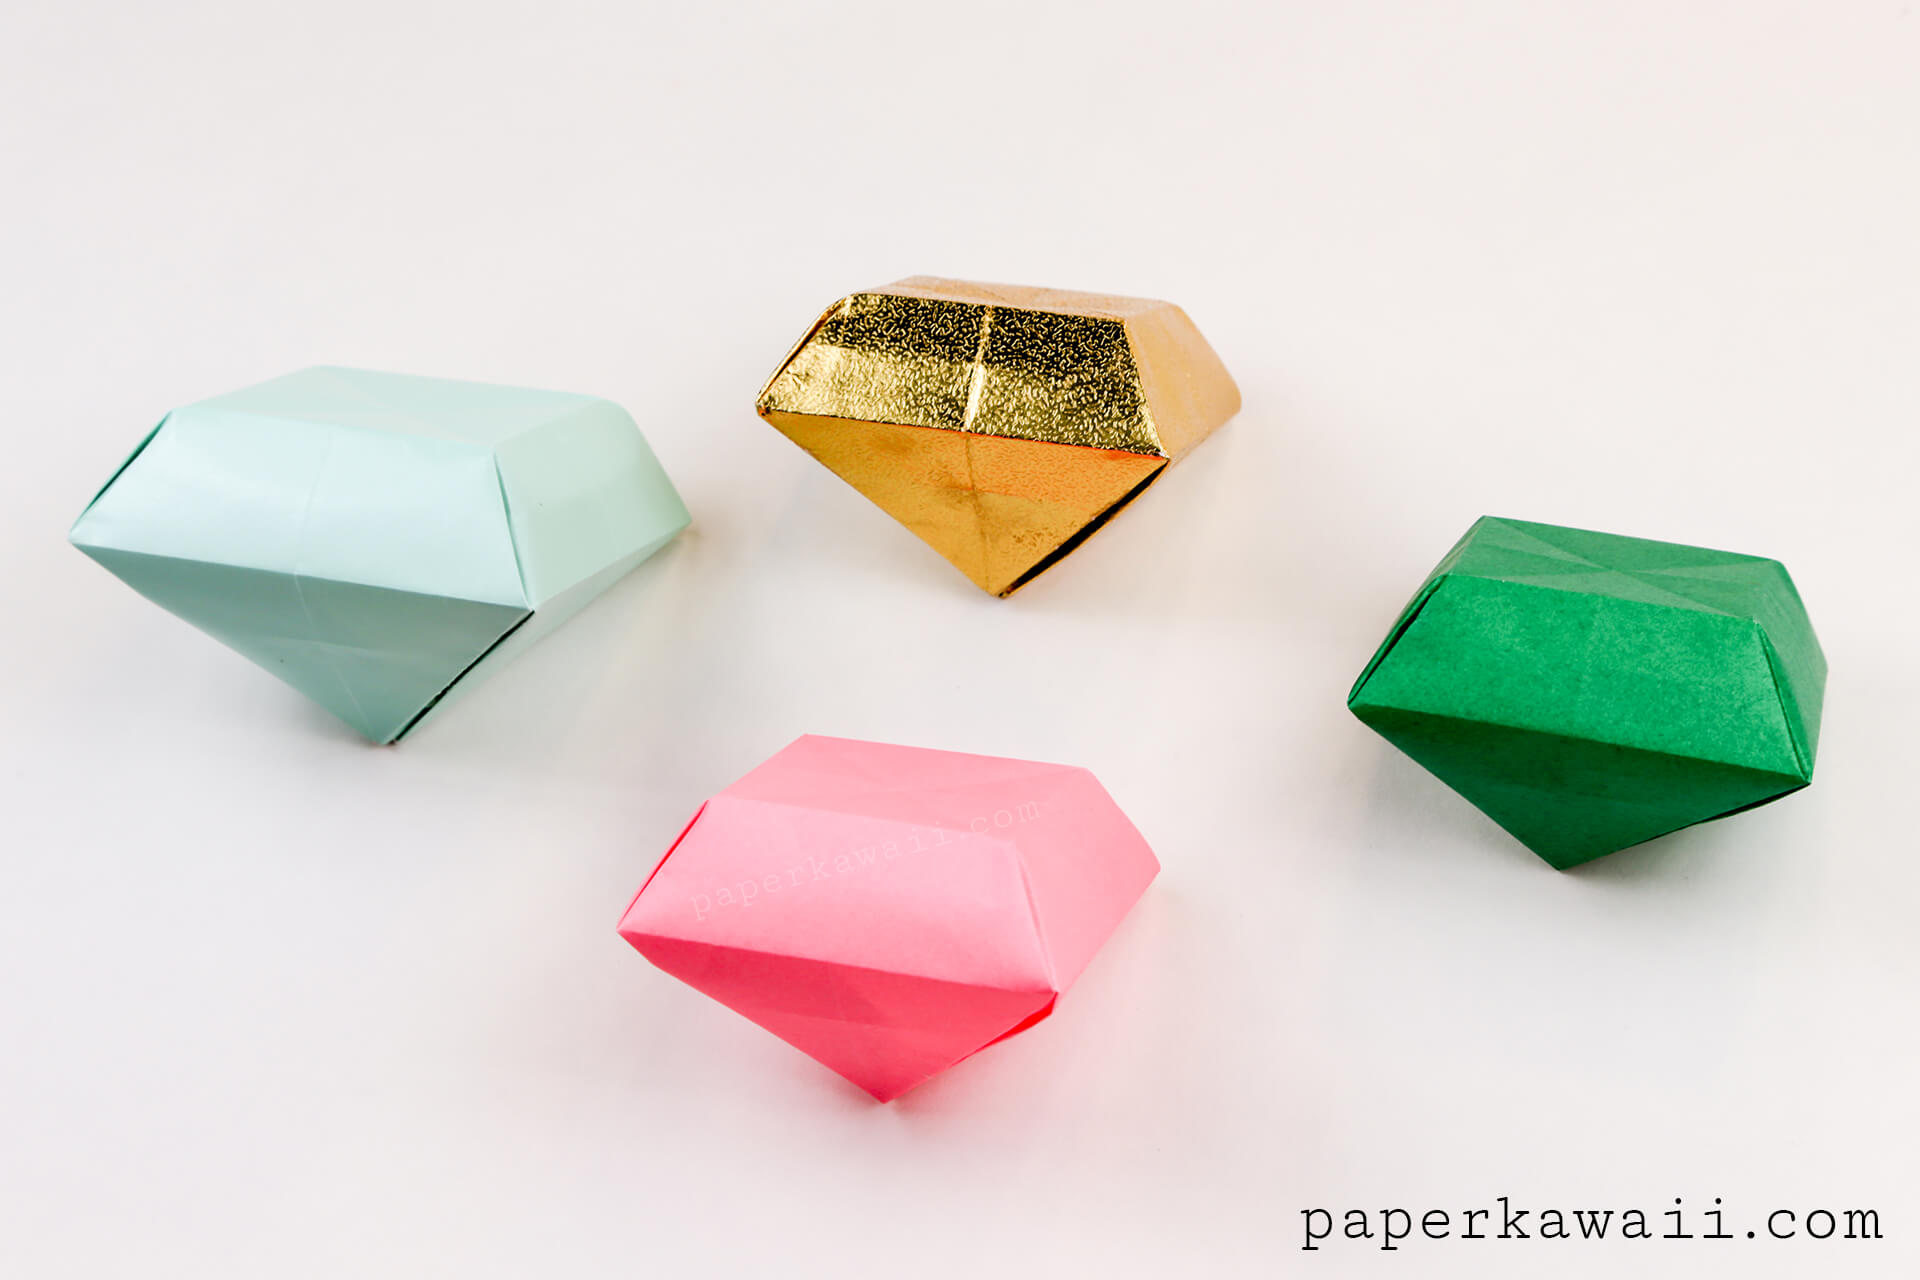 Origami paper crystal tutorial make 3d gems paper kawaii - Origami paper tutorial ...